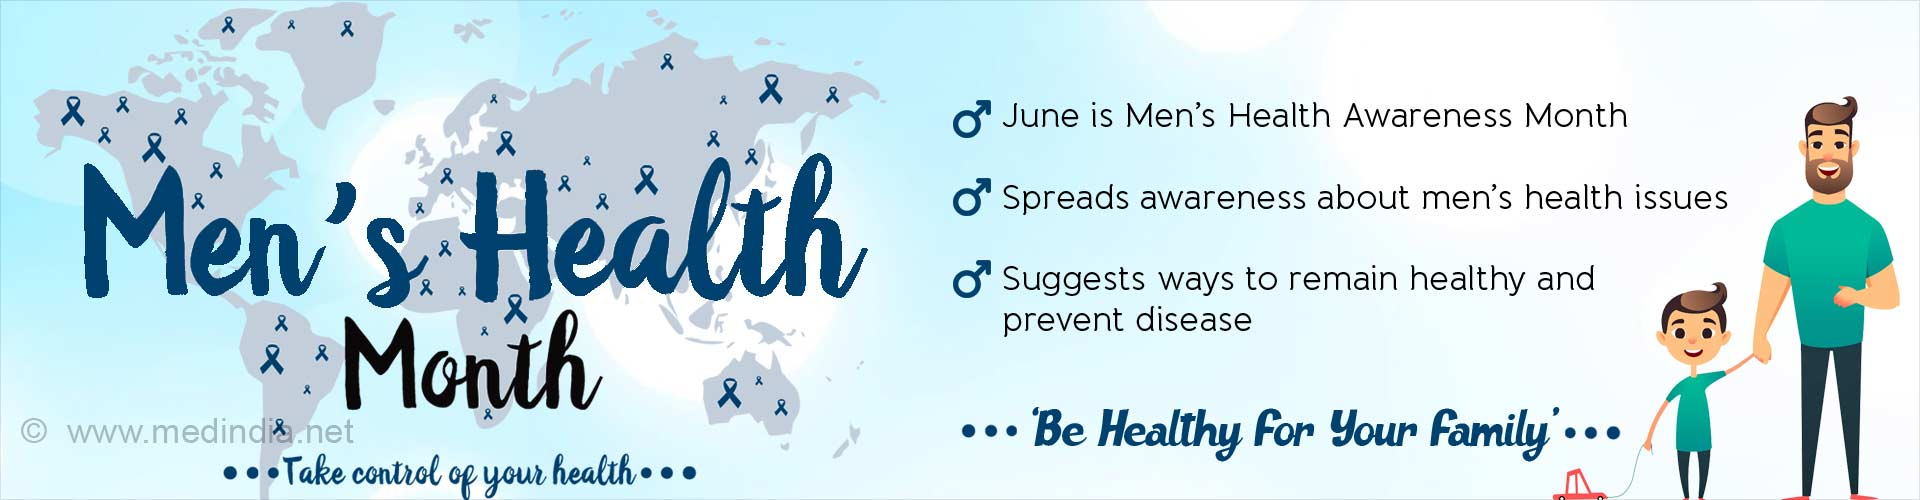 Men's Health Month - Recognizing and Preventing Men's Health Problems